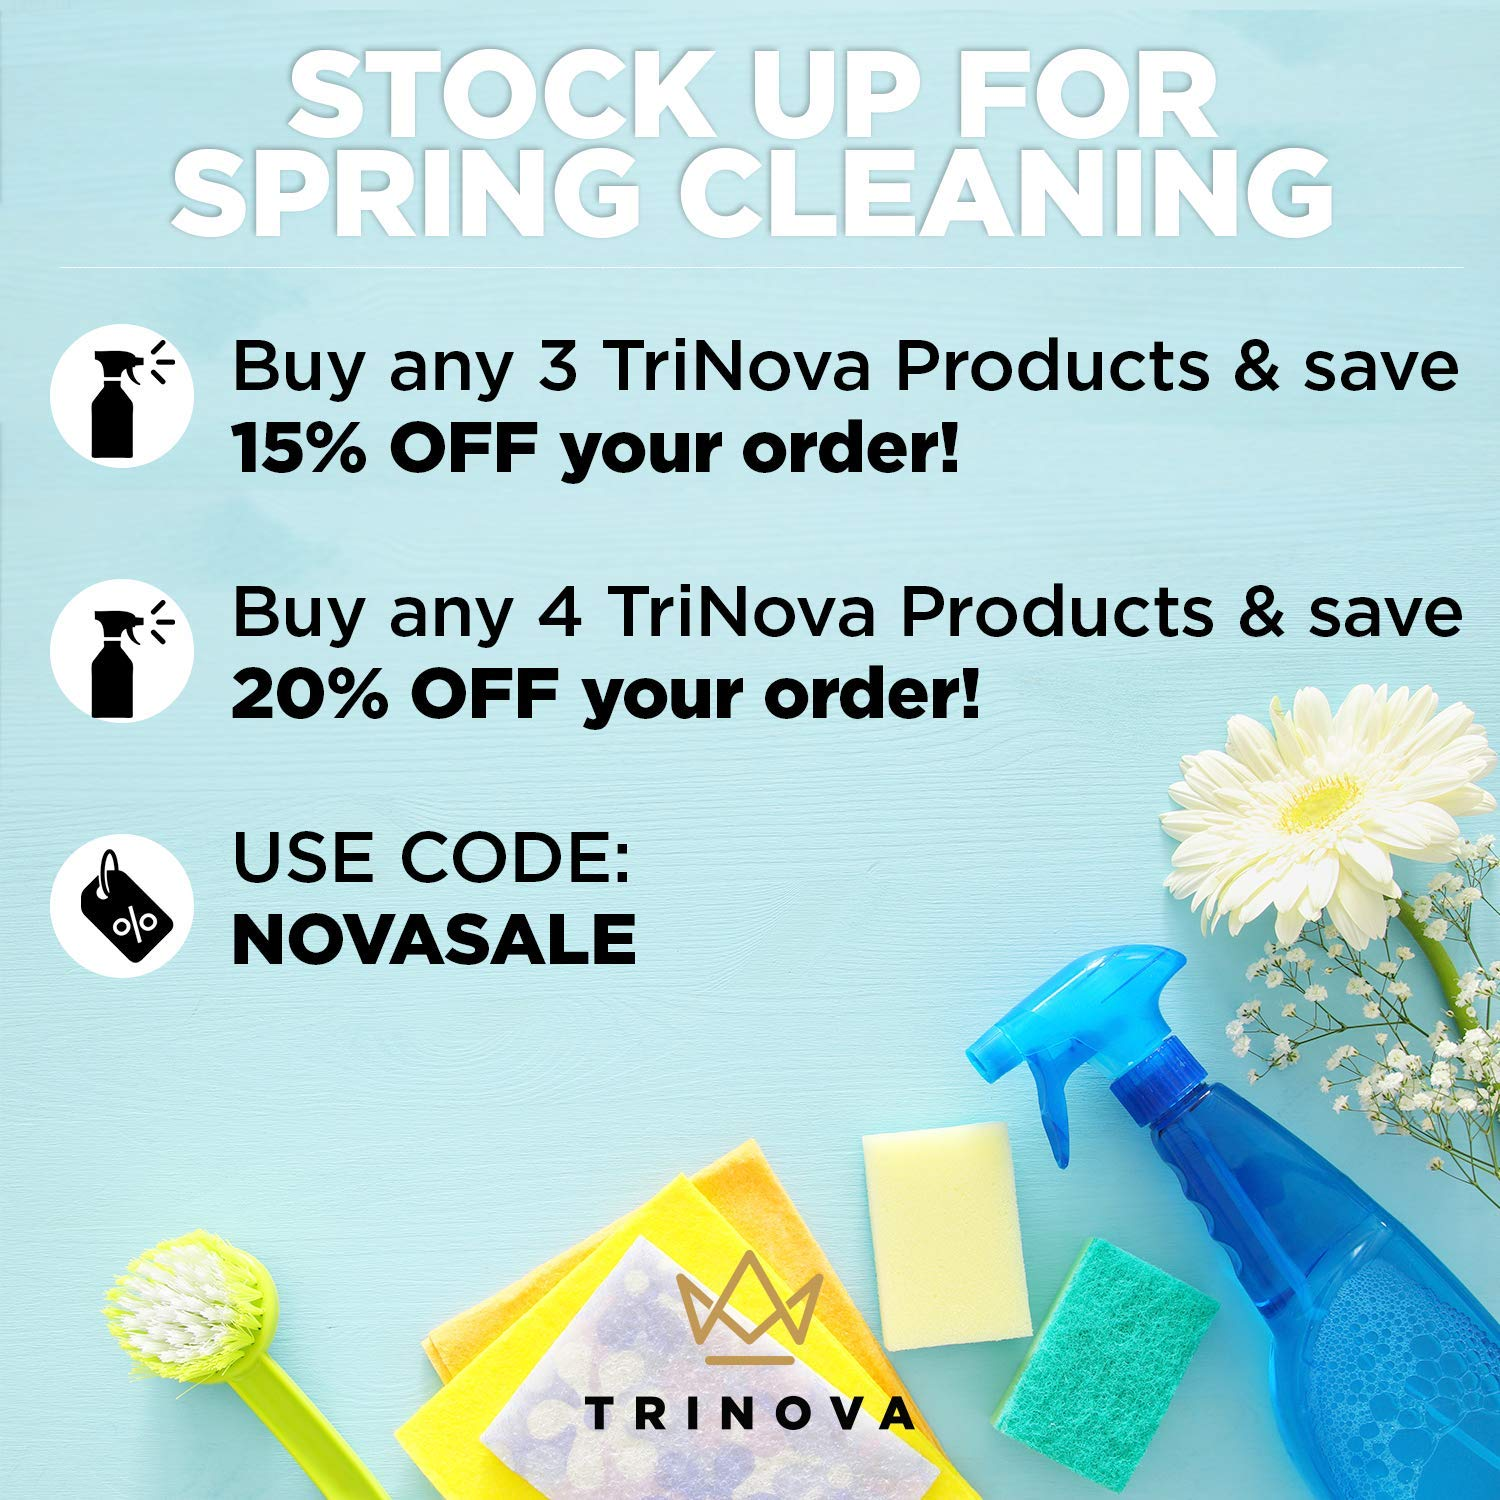 TriNova Shoe Cleaner Kit - Tennis, Sneaker, Boots, More - Premiun Cleaning to Remove Dirt and Stains. Free Brush 8OZ by TriNova (Image #4)